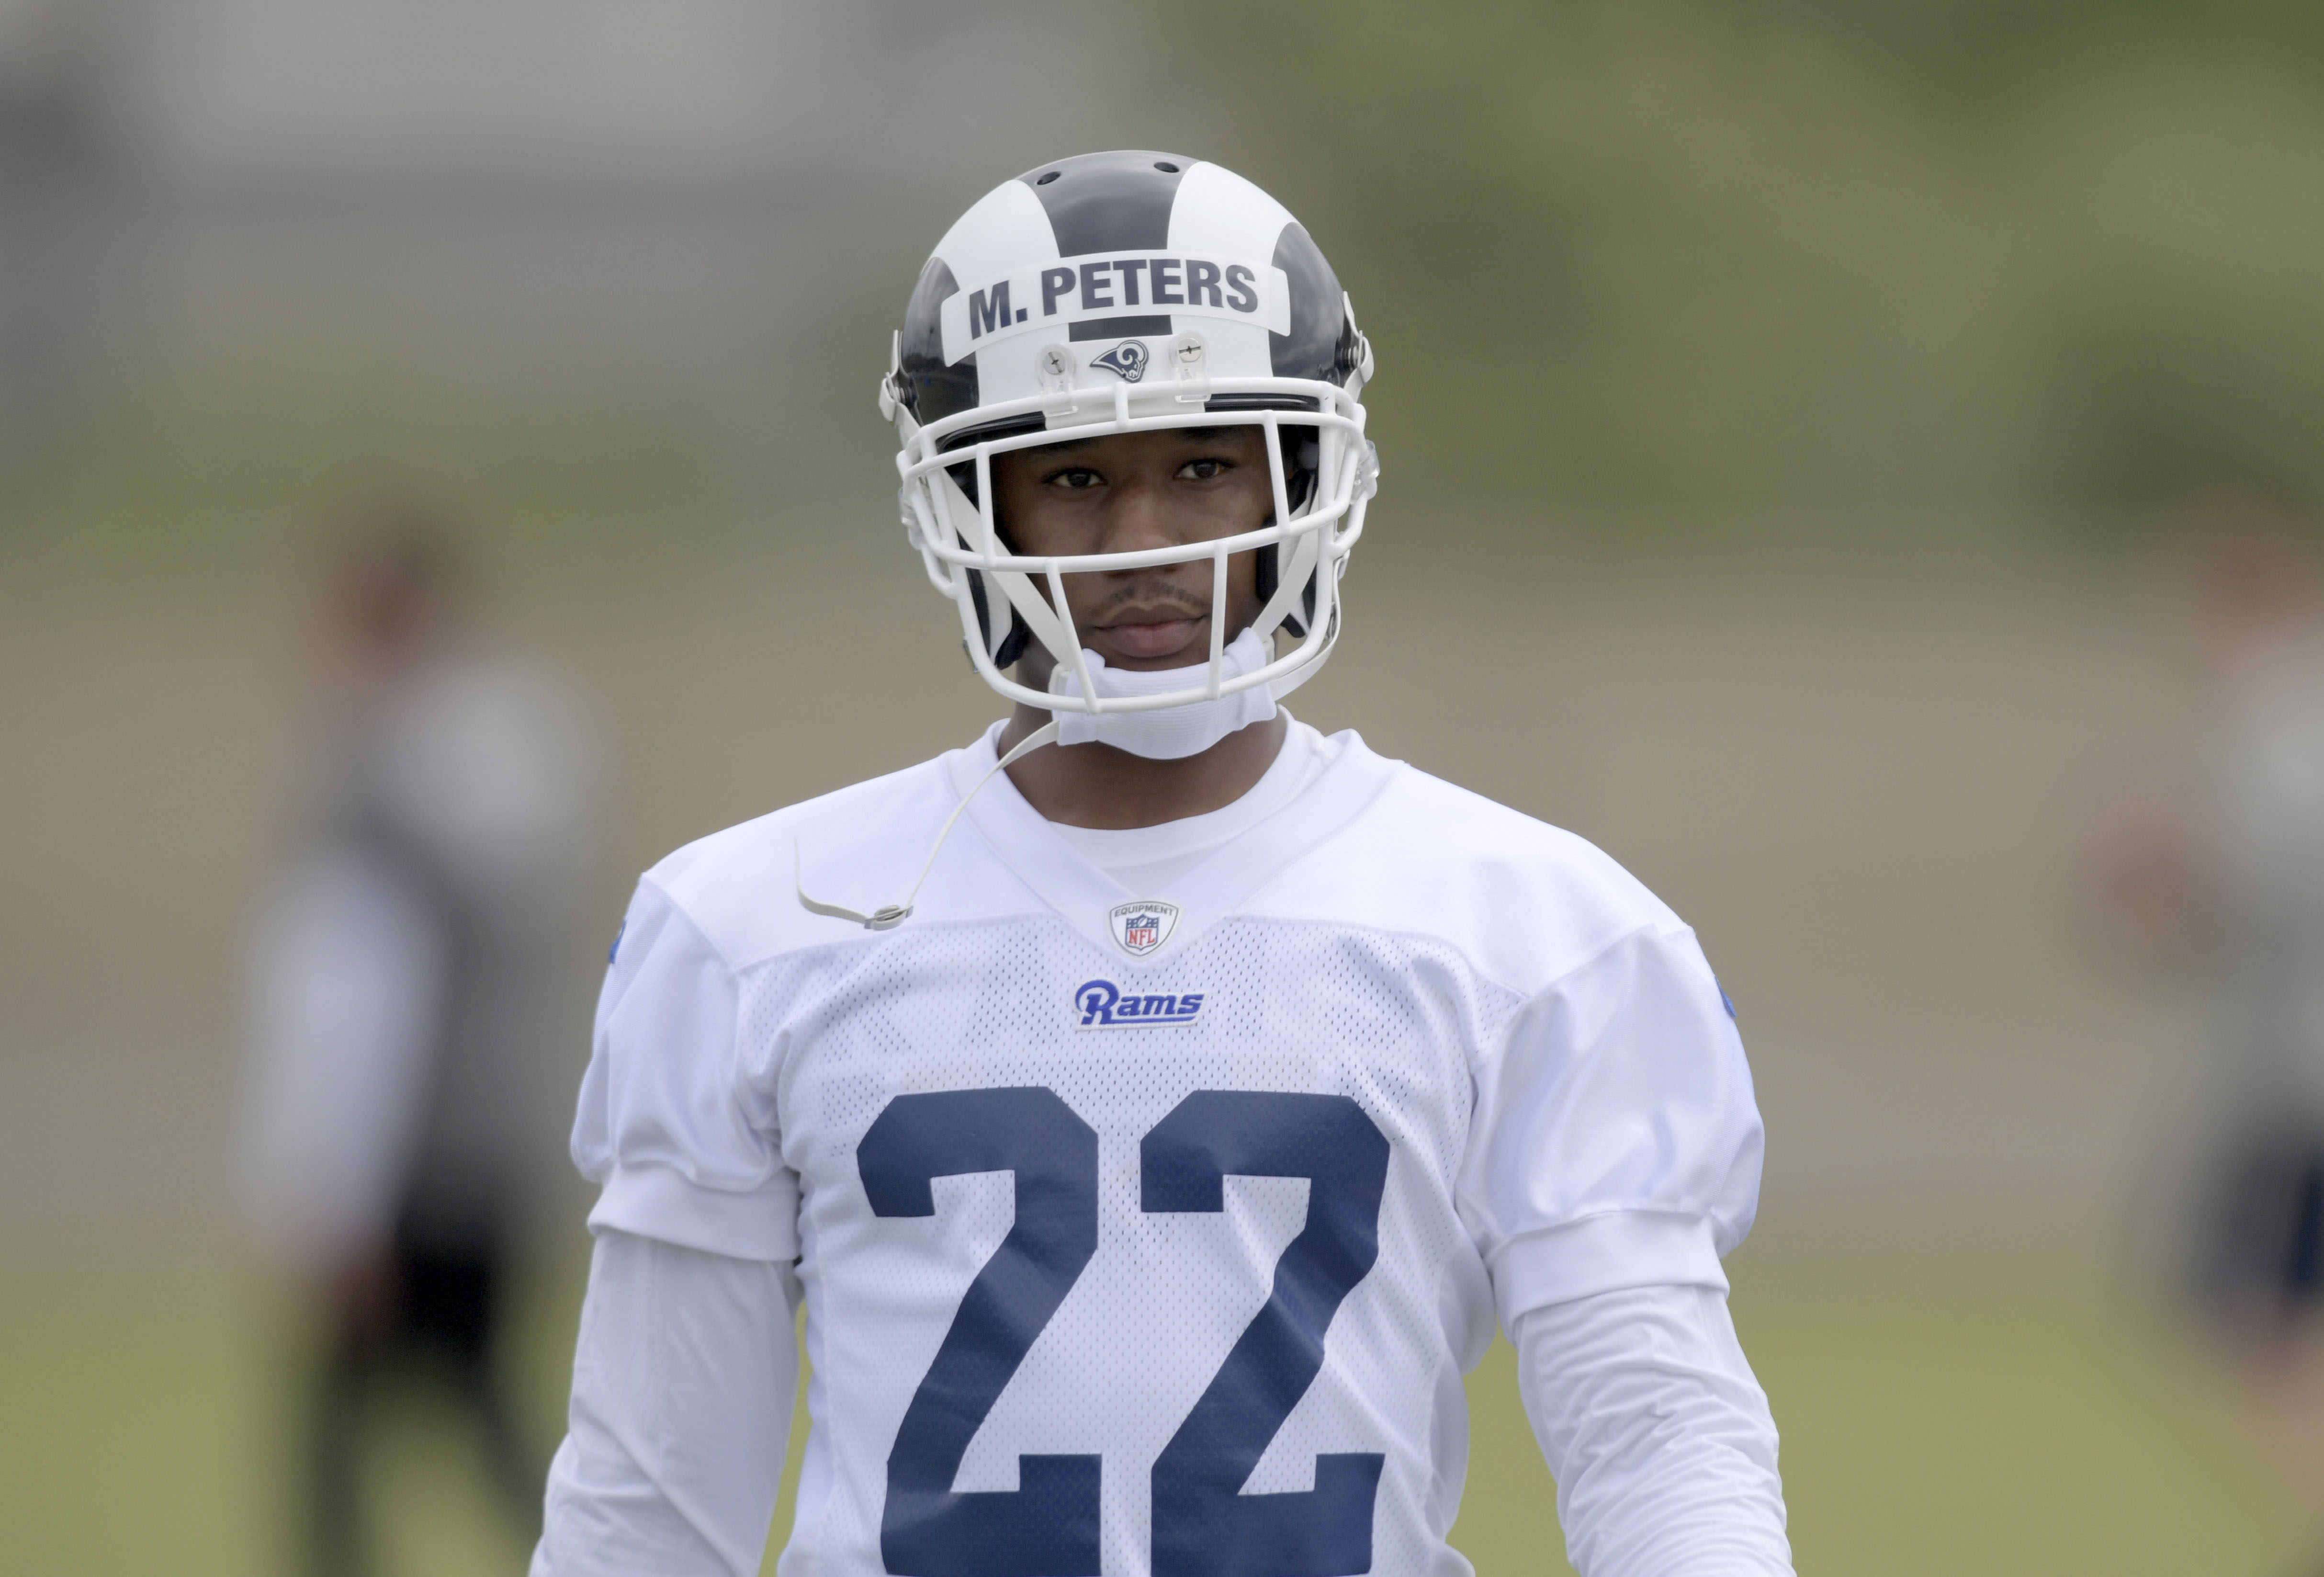 58552d1c 2018 Los Angeles Rams Roster Preview: CB Marcus Peters on two-year  probation rotation